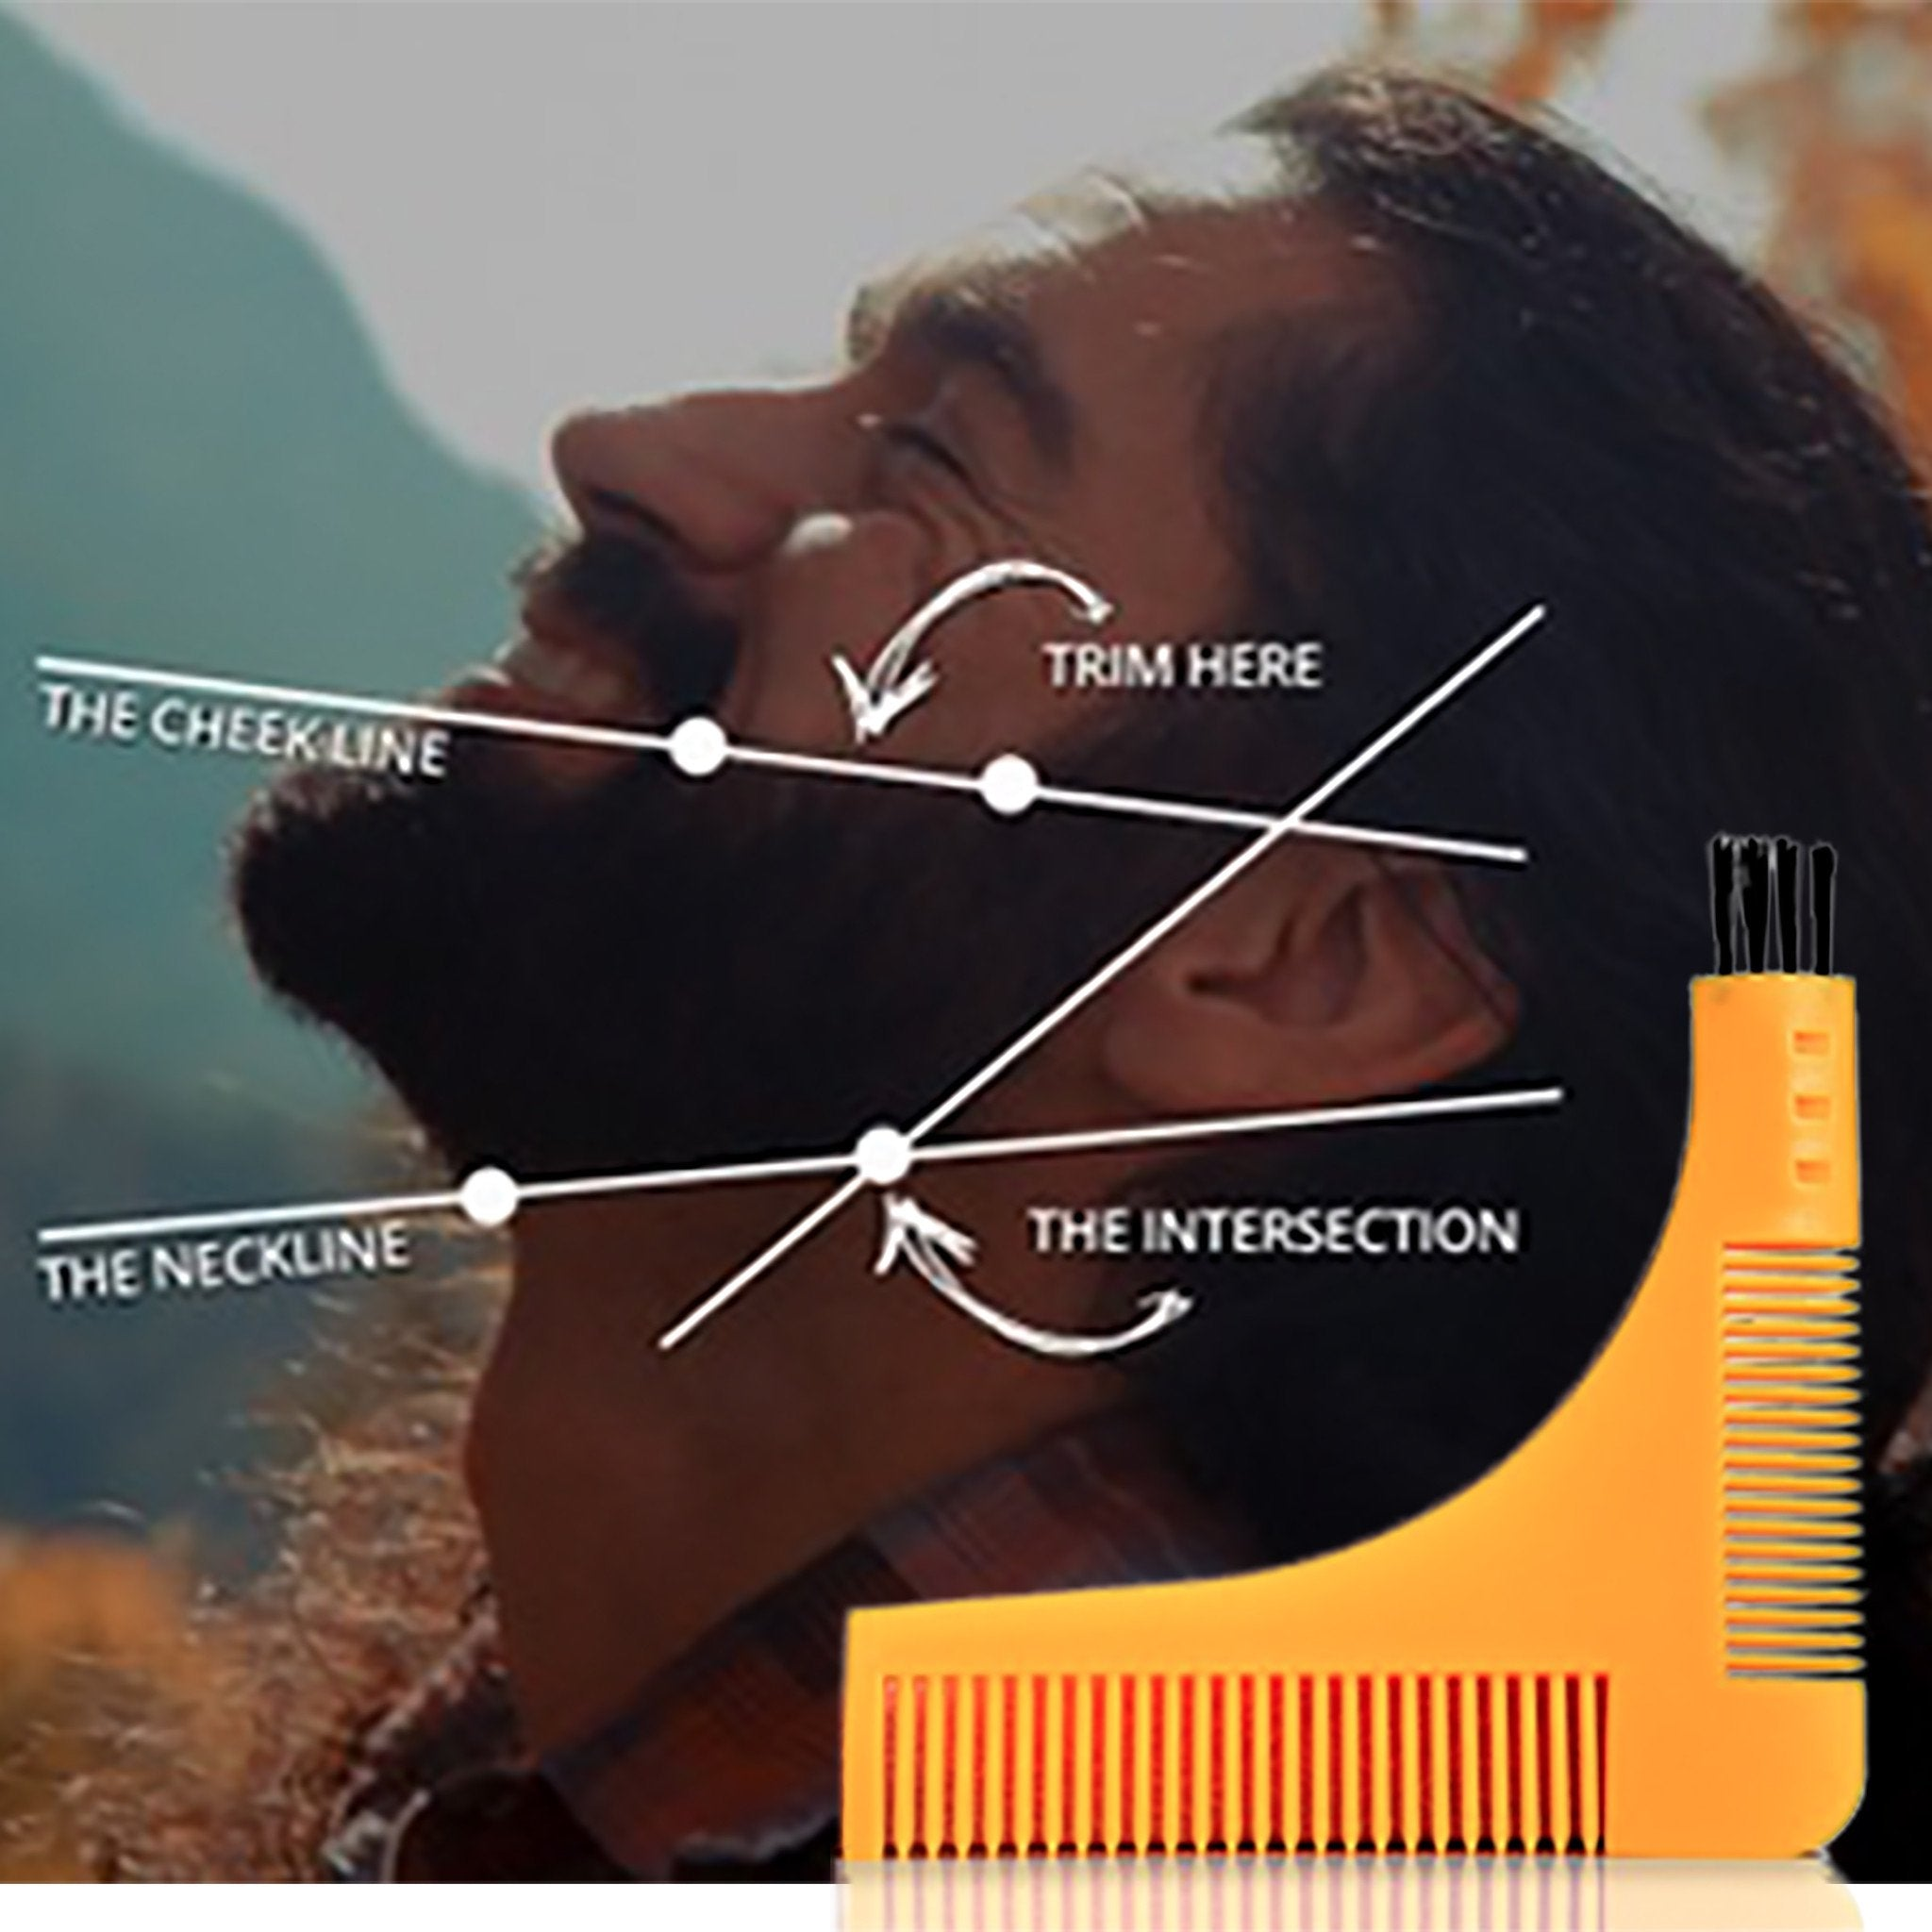 Groomarang Beard Shaping & Styling Template Comb, Combs & Brushes - Image 4